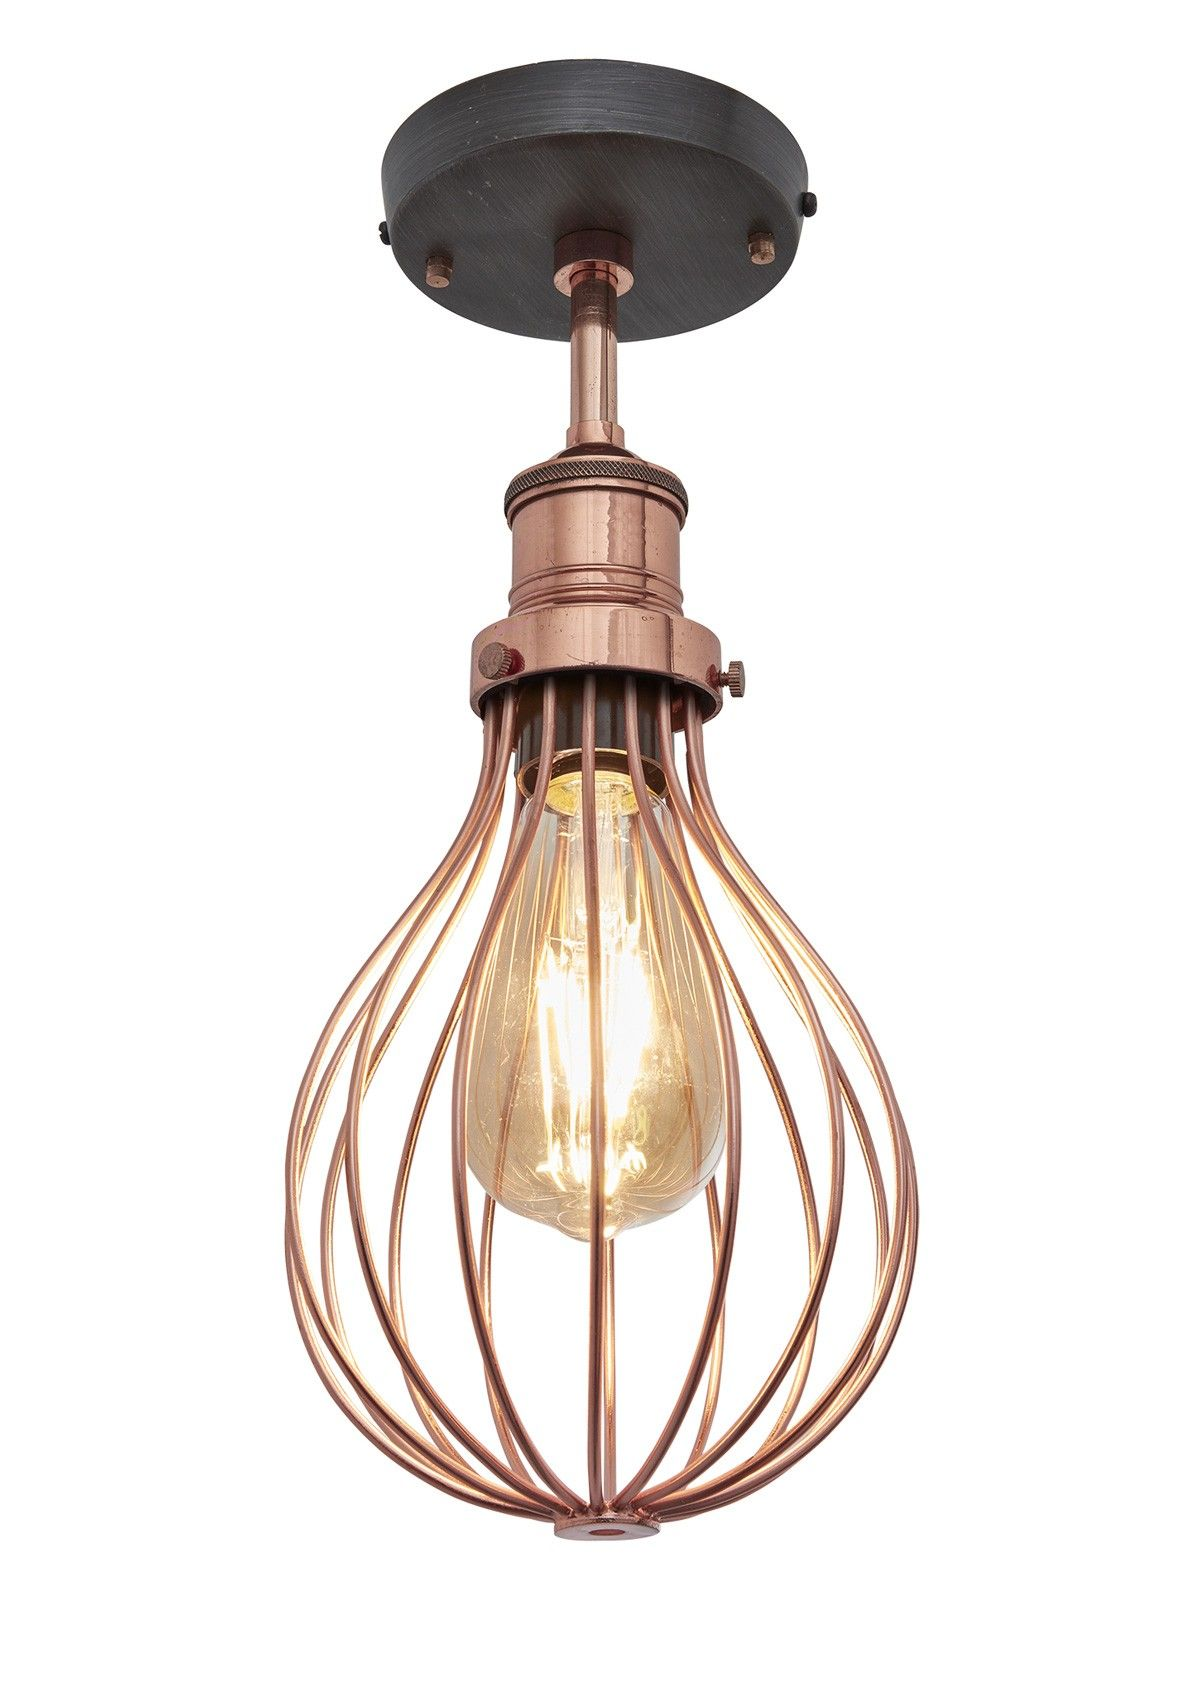 Our stylish industrial orlando vintage balloon cage flush mount orlando vintage balloon cage flush mount light in copper by industville arubaitofo Choice Image